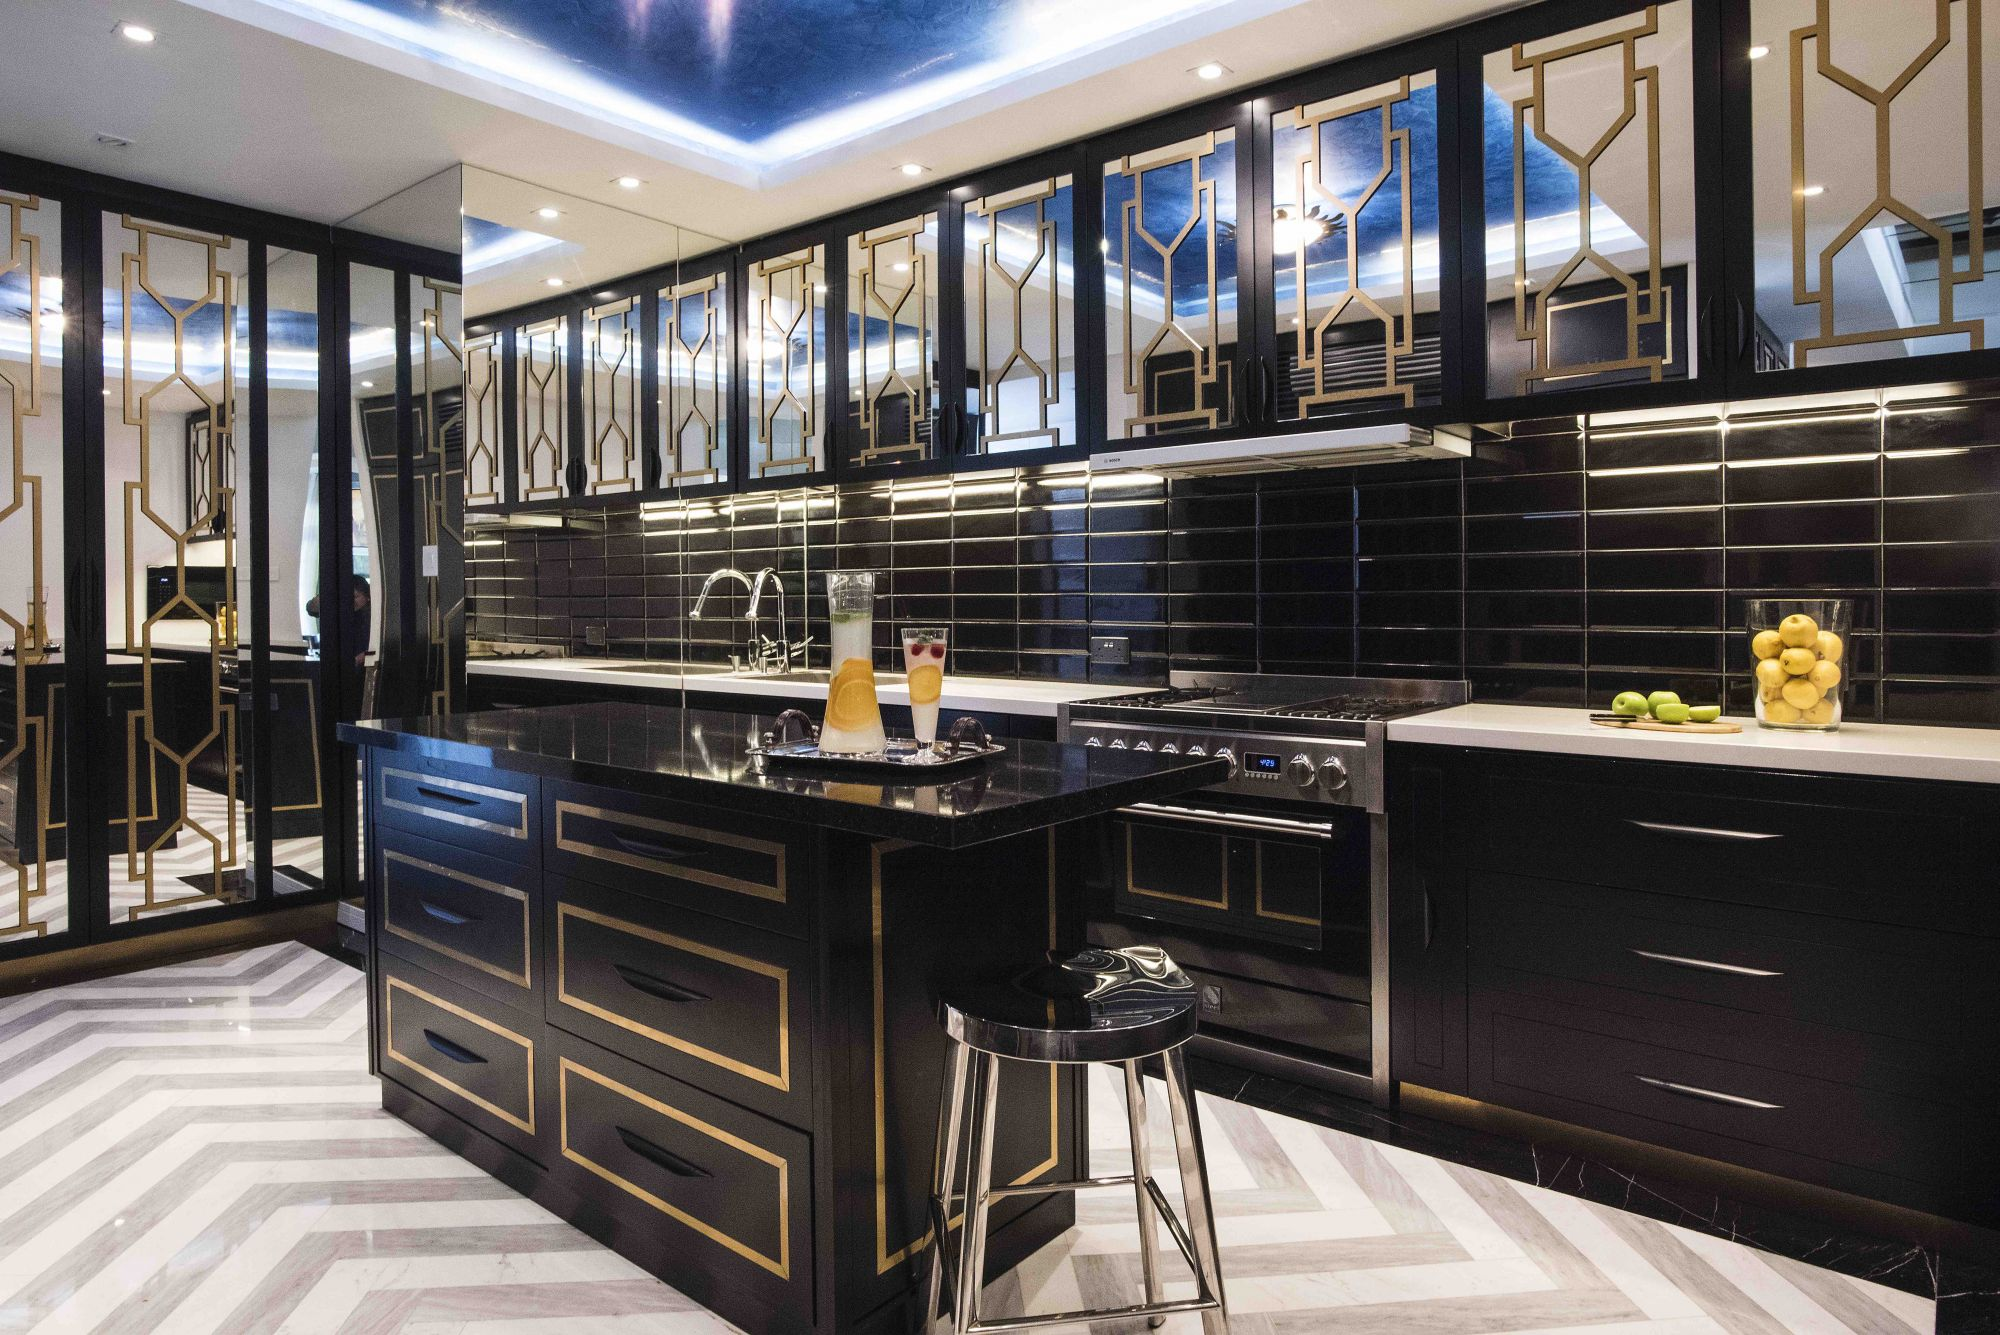 A kitchen crafted by Design Intervention, which features mirrored doors and chevron-patterned flooring